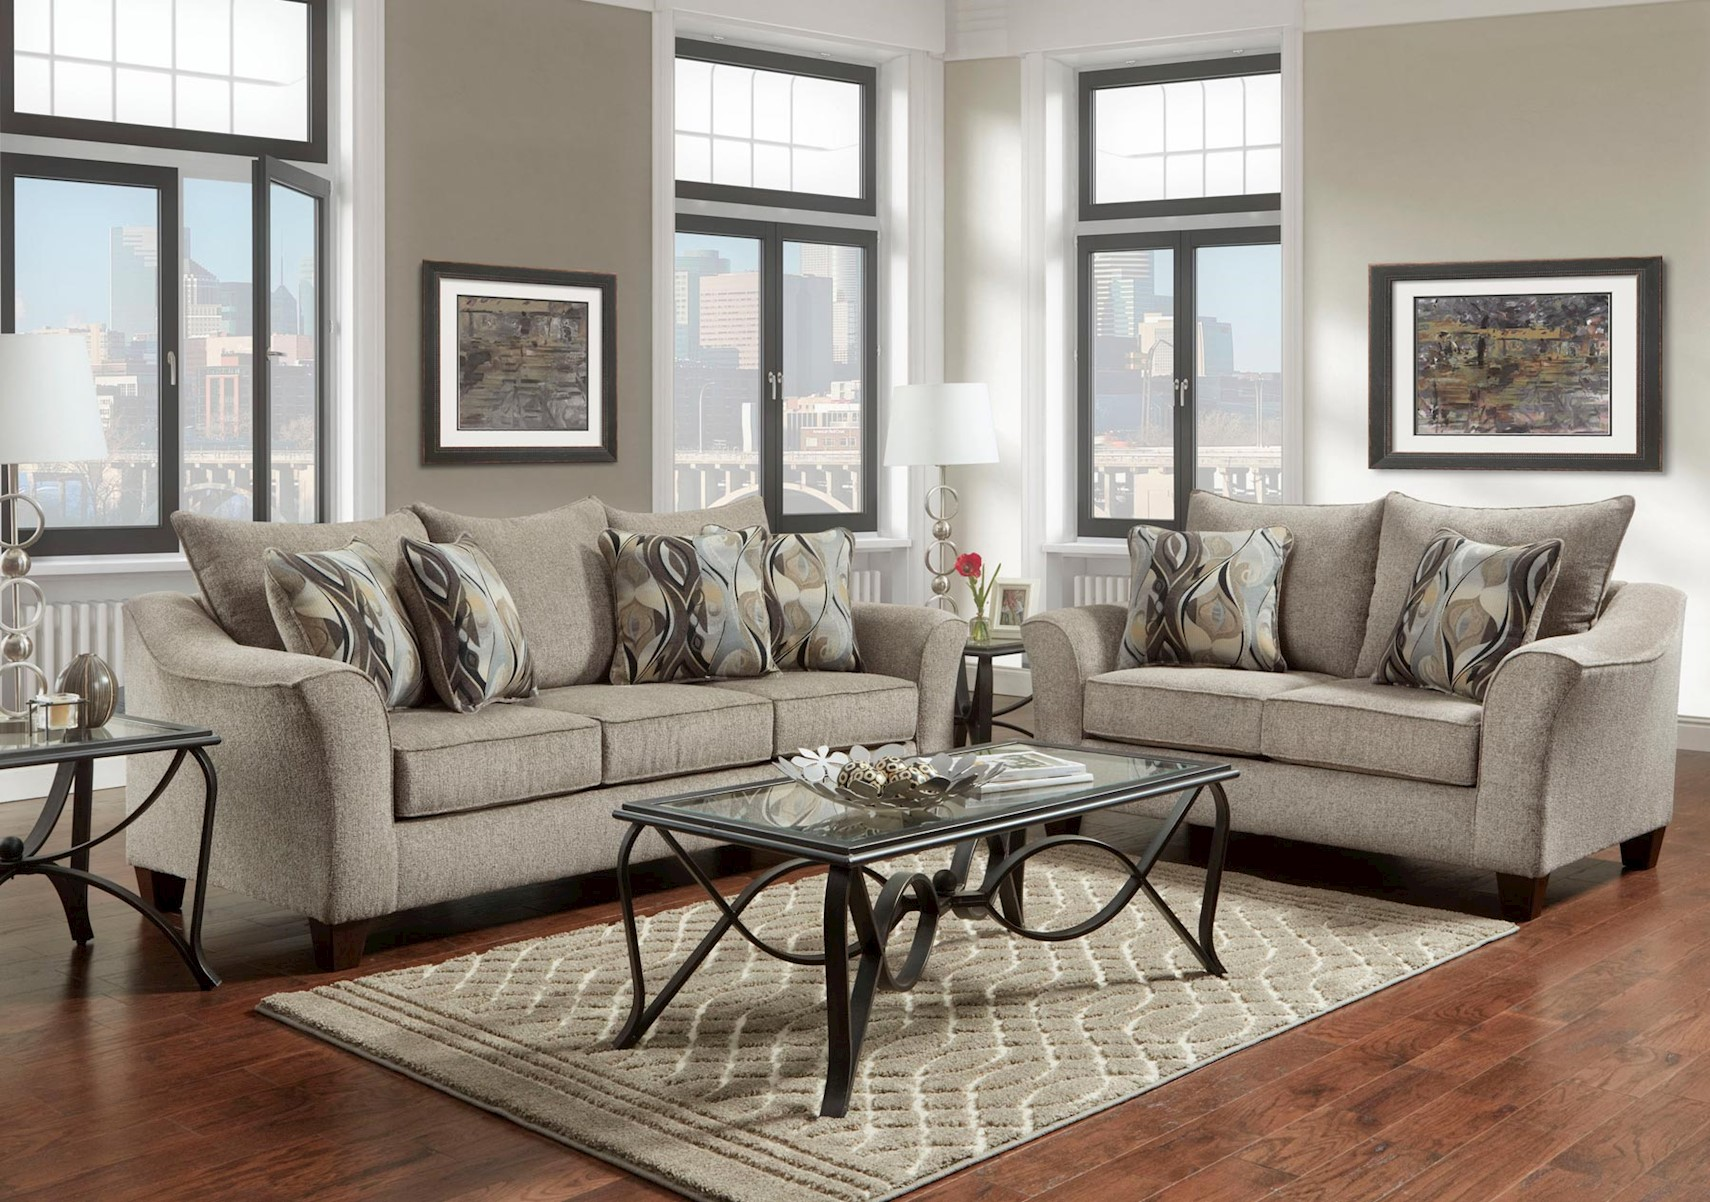 Miraculous Lacks Camero Platinum 2 Pc Living Room Set Home Interior And Landscaping Ponolsignezvosmurscom